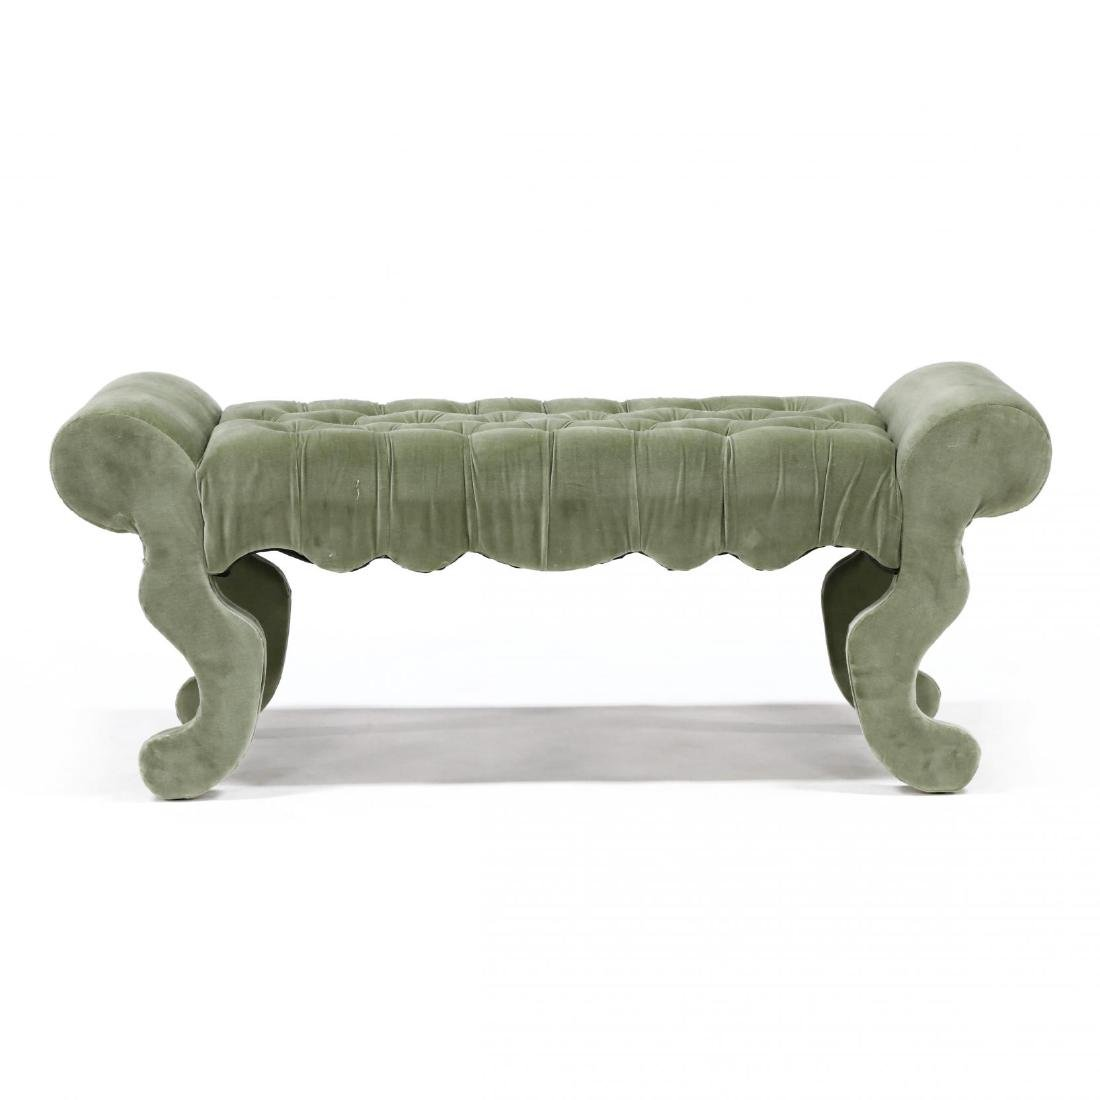 Contemporary Over Upholstered Bench - 3